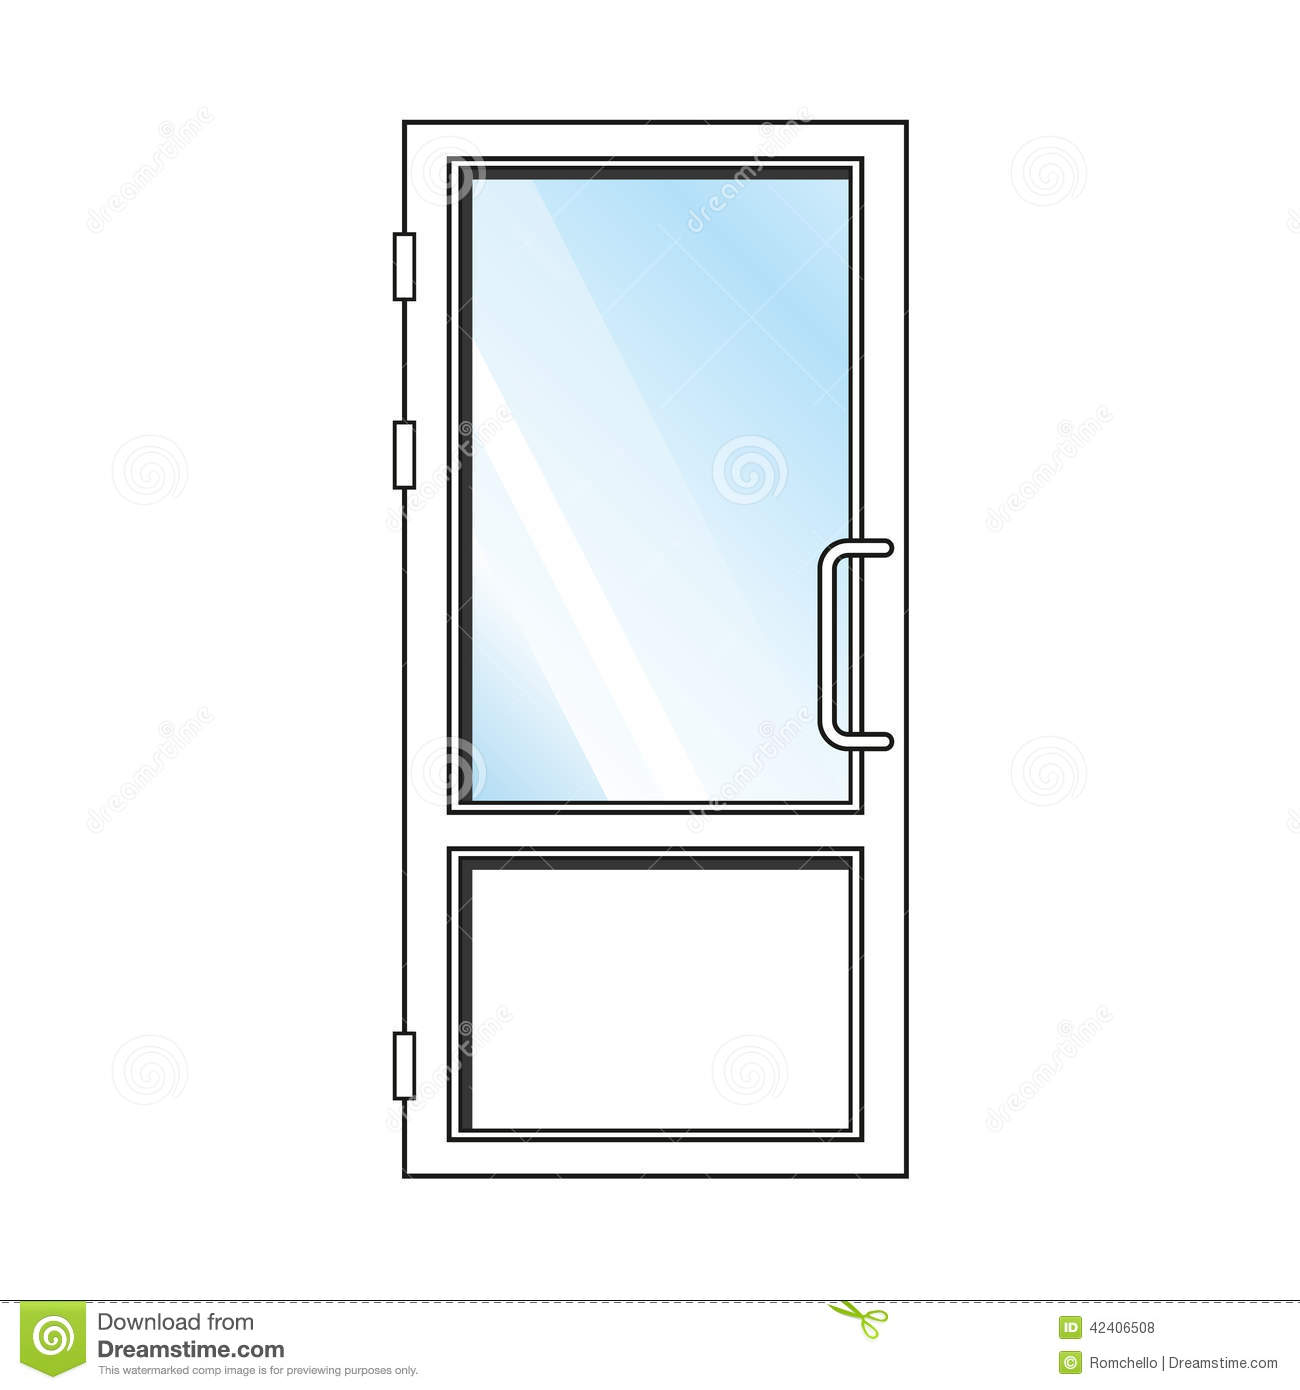 How to Adjust a Sliding Glass Door 5 Easy Tips to a